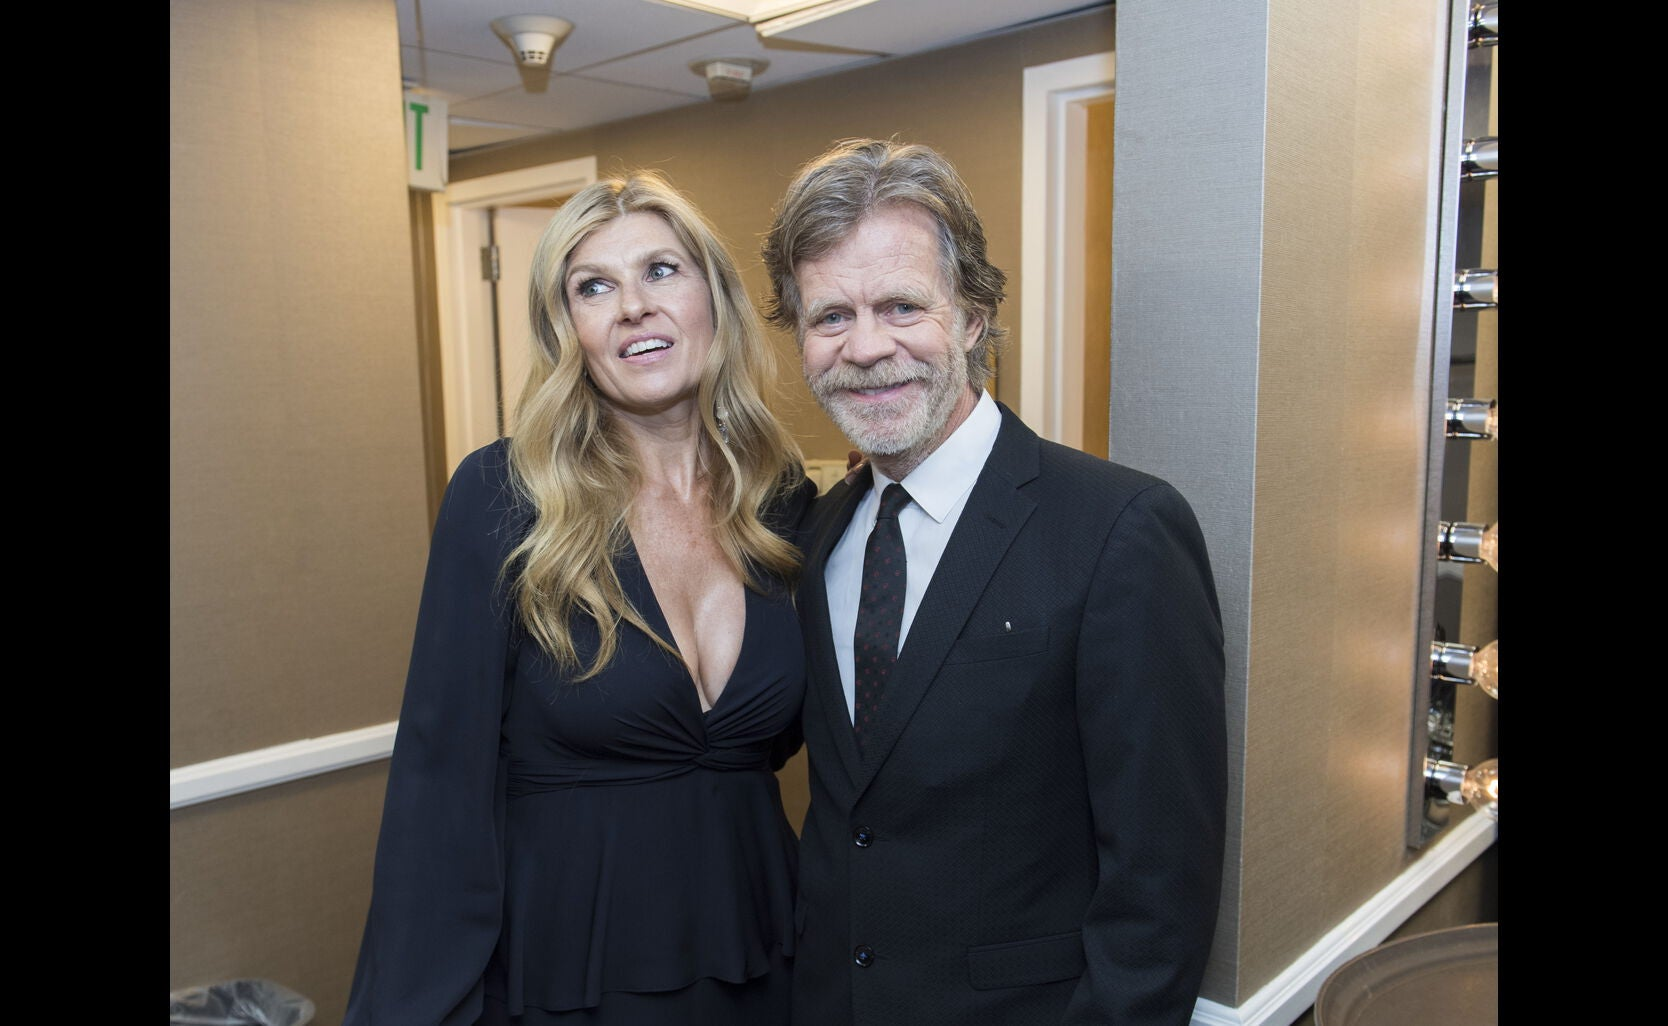 Connie Britton and William H. Macy